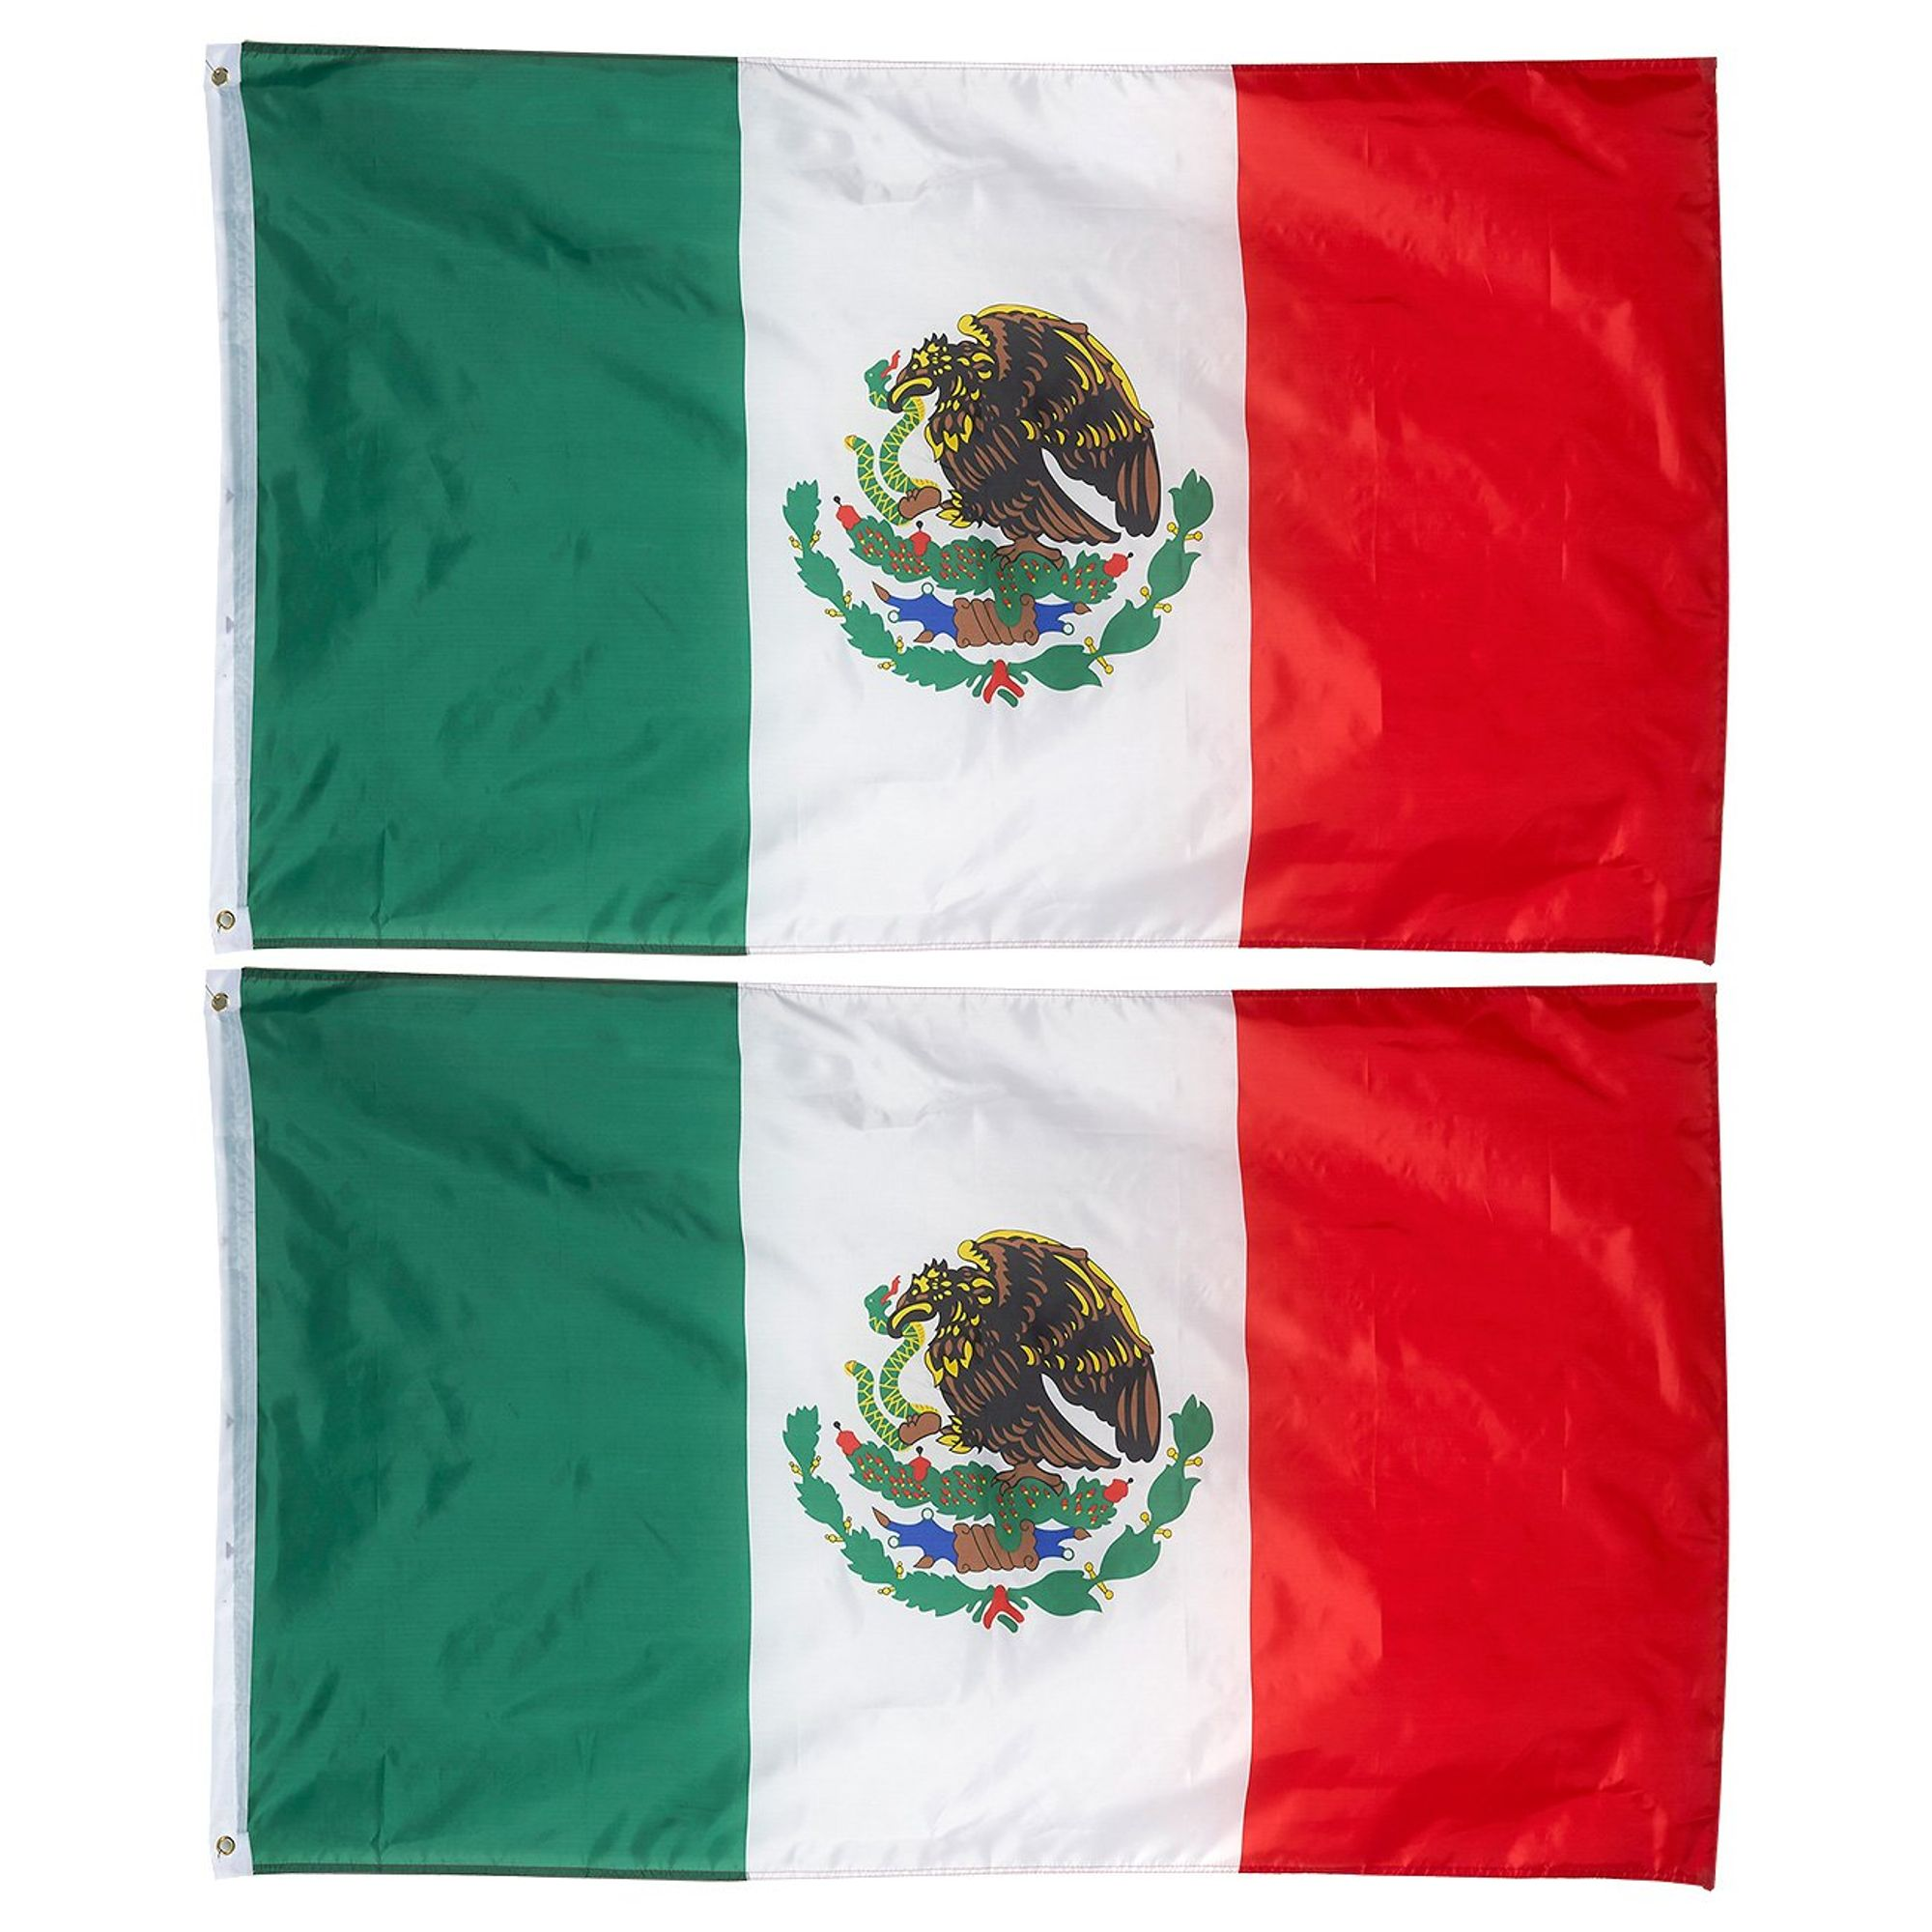 2 Pack 3x5 Foot Mexico Flags Mexican Mx National Flag Banner Outdoor Polyester With Brass Grommets Walmart Com Walmart Com